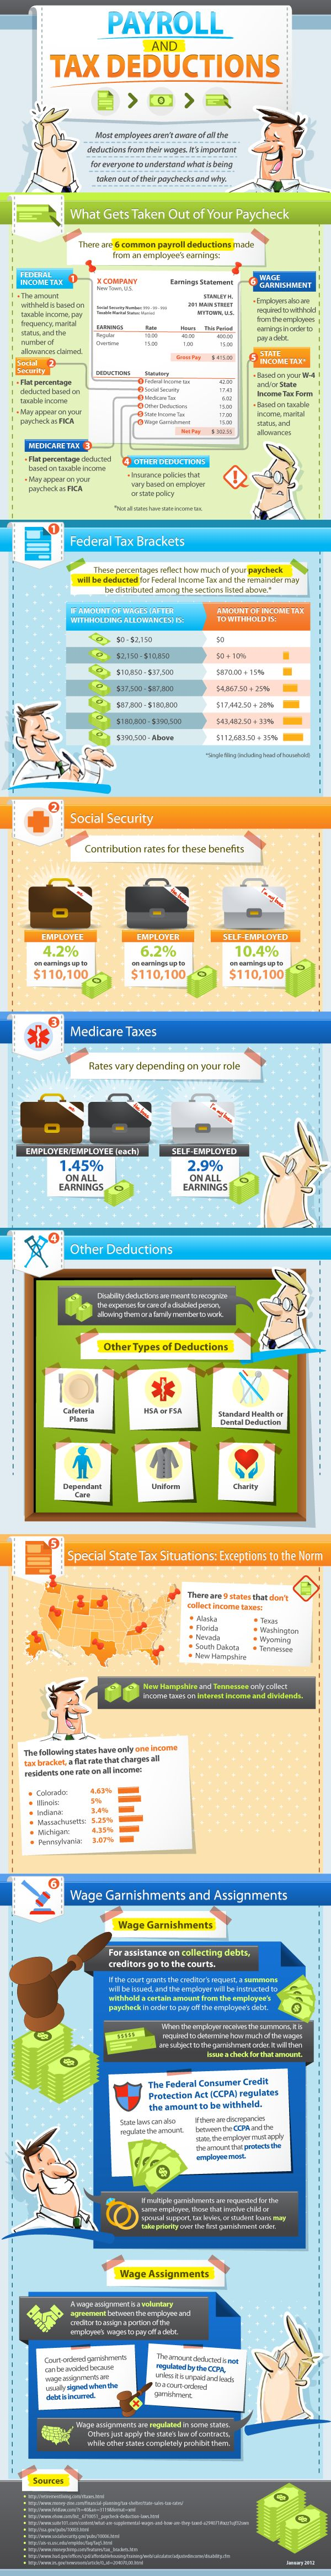 Infographic: What gets taken out of your paycheck